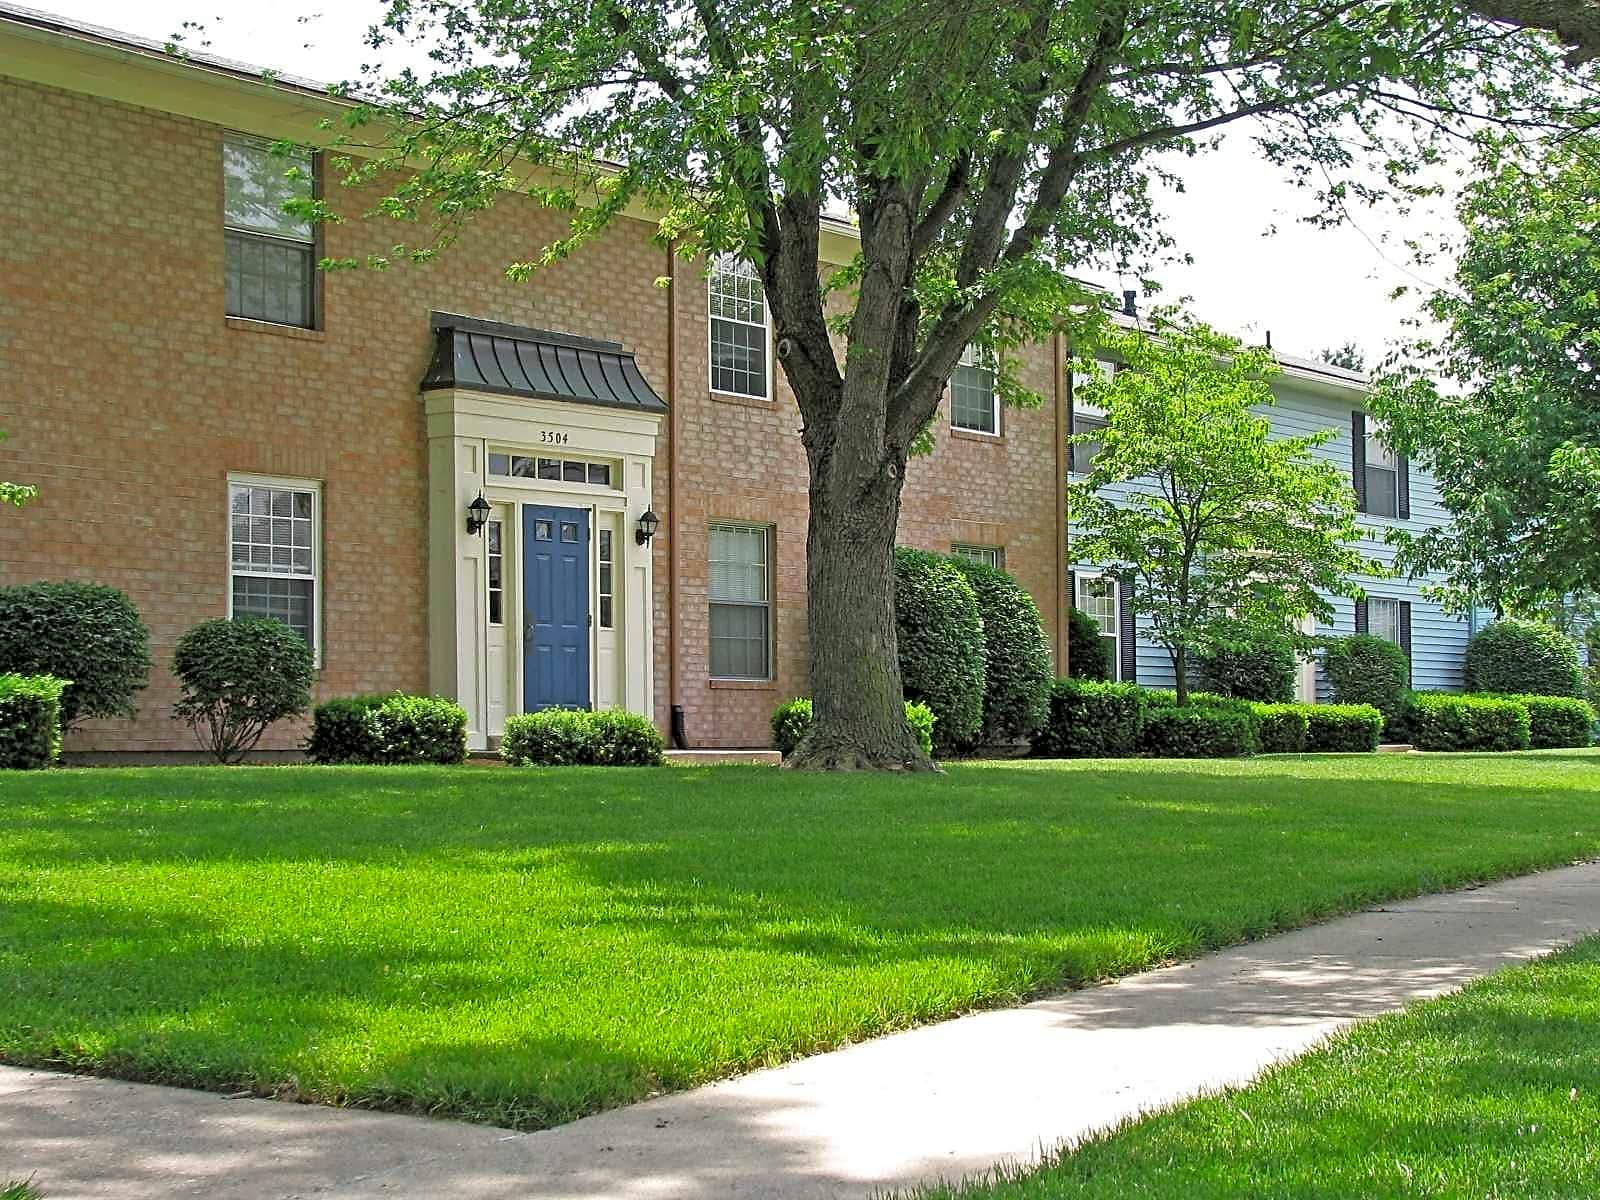 Photo: Elkhart Apartment for Rent - $553.00 / month; 1 Bd & 1 Ba